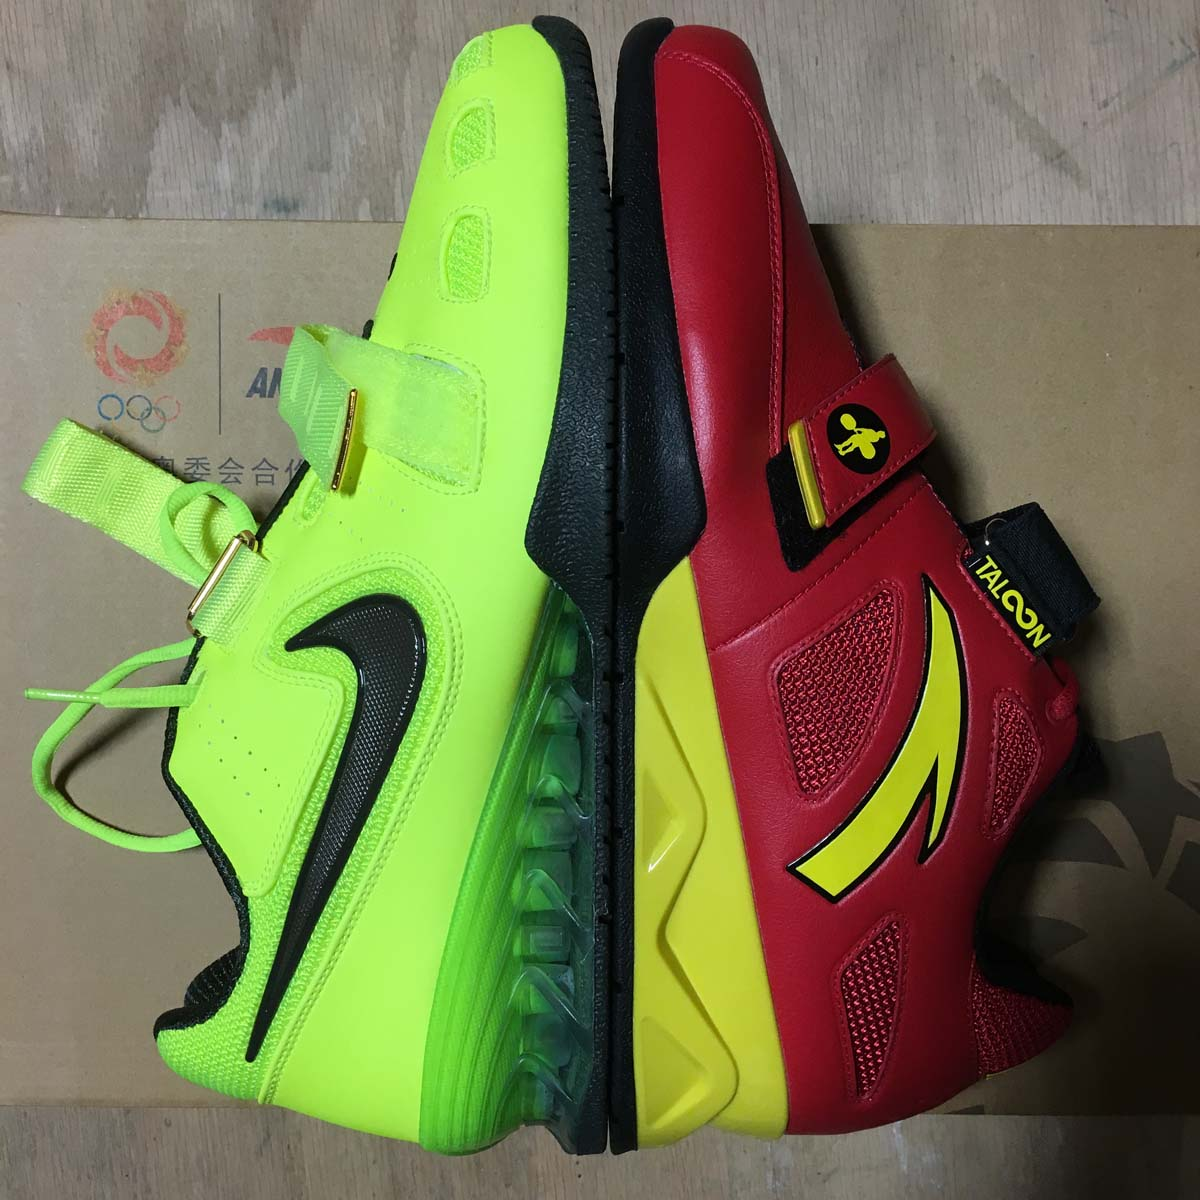 Anta RedYellow Chinese Weightlifting Shoe (Size 6 US)